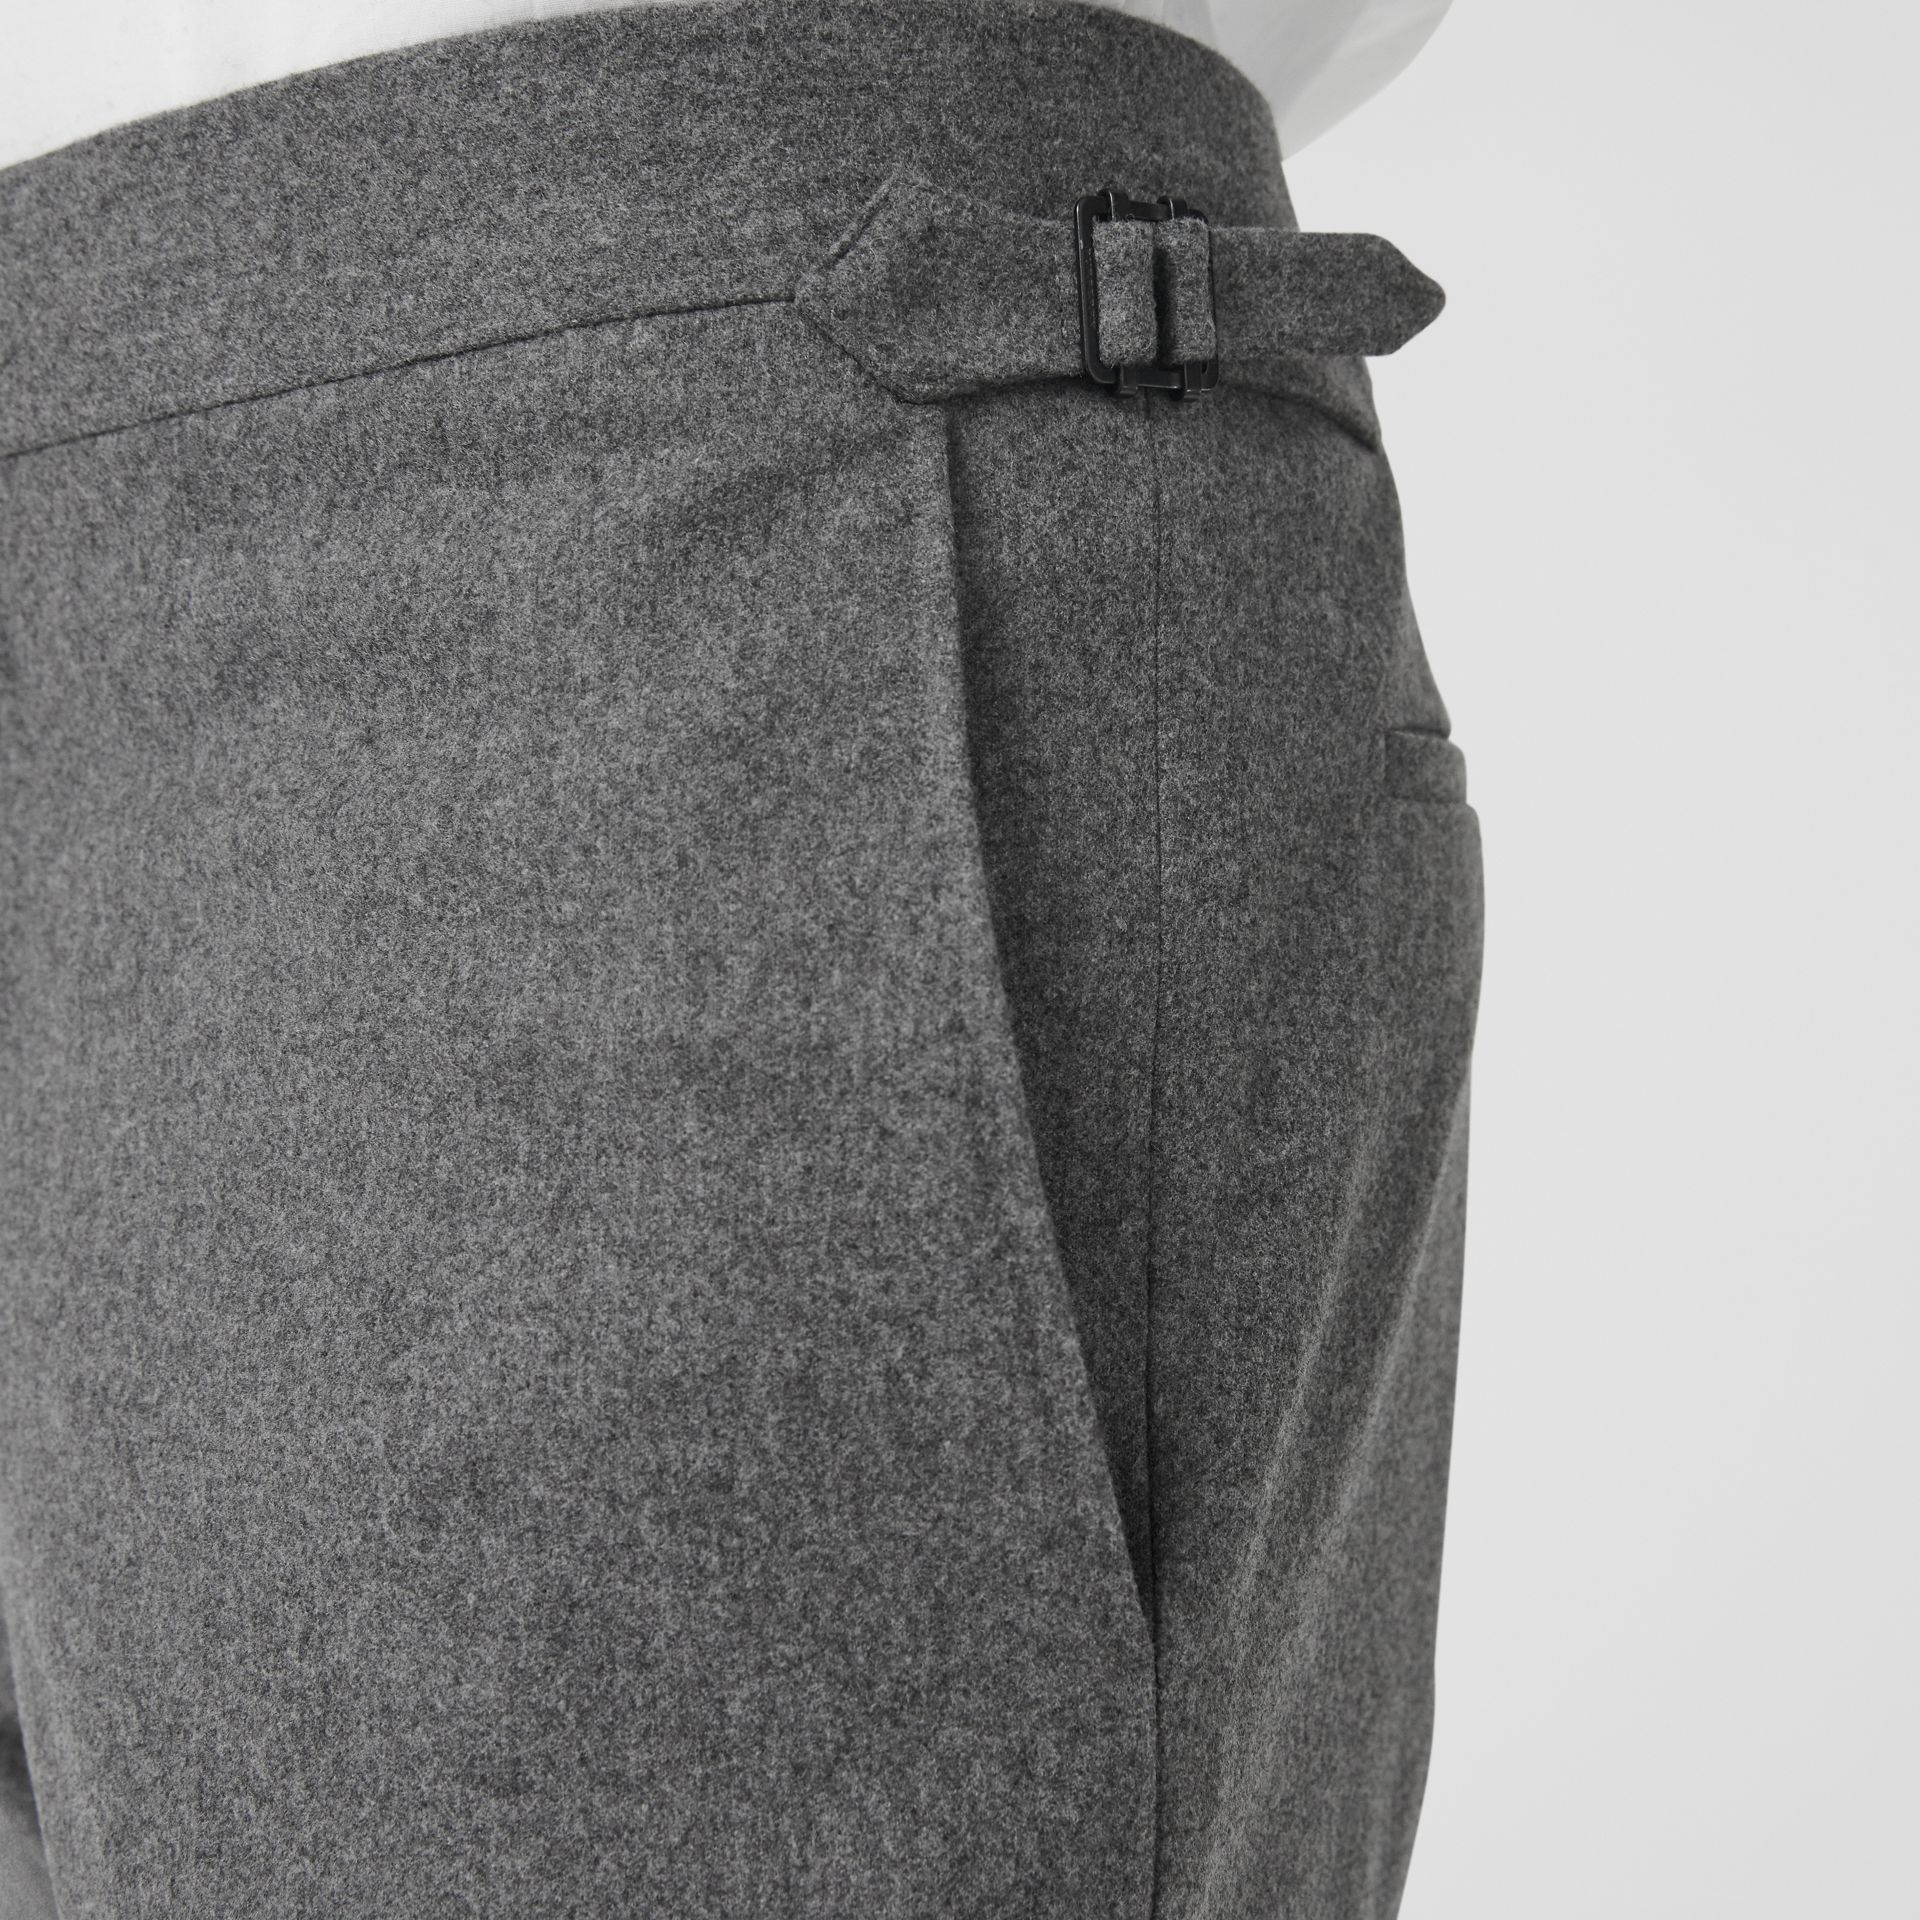 Classic Fit Wool Cashmere Tailored Trousers in Grey - Men | Burberry Canada - gallery image 1